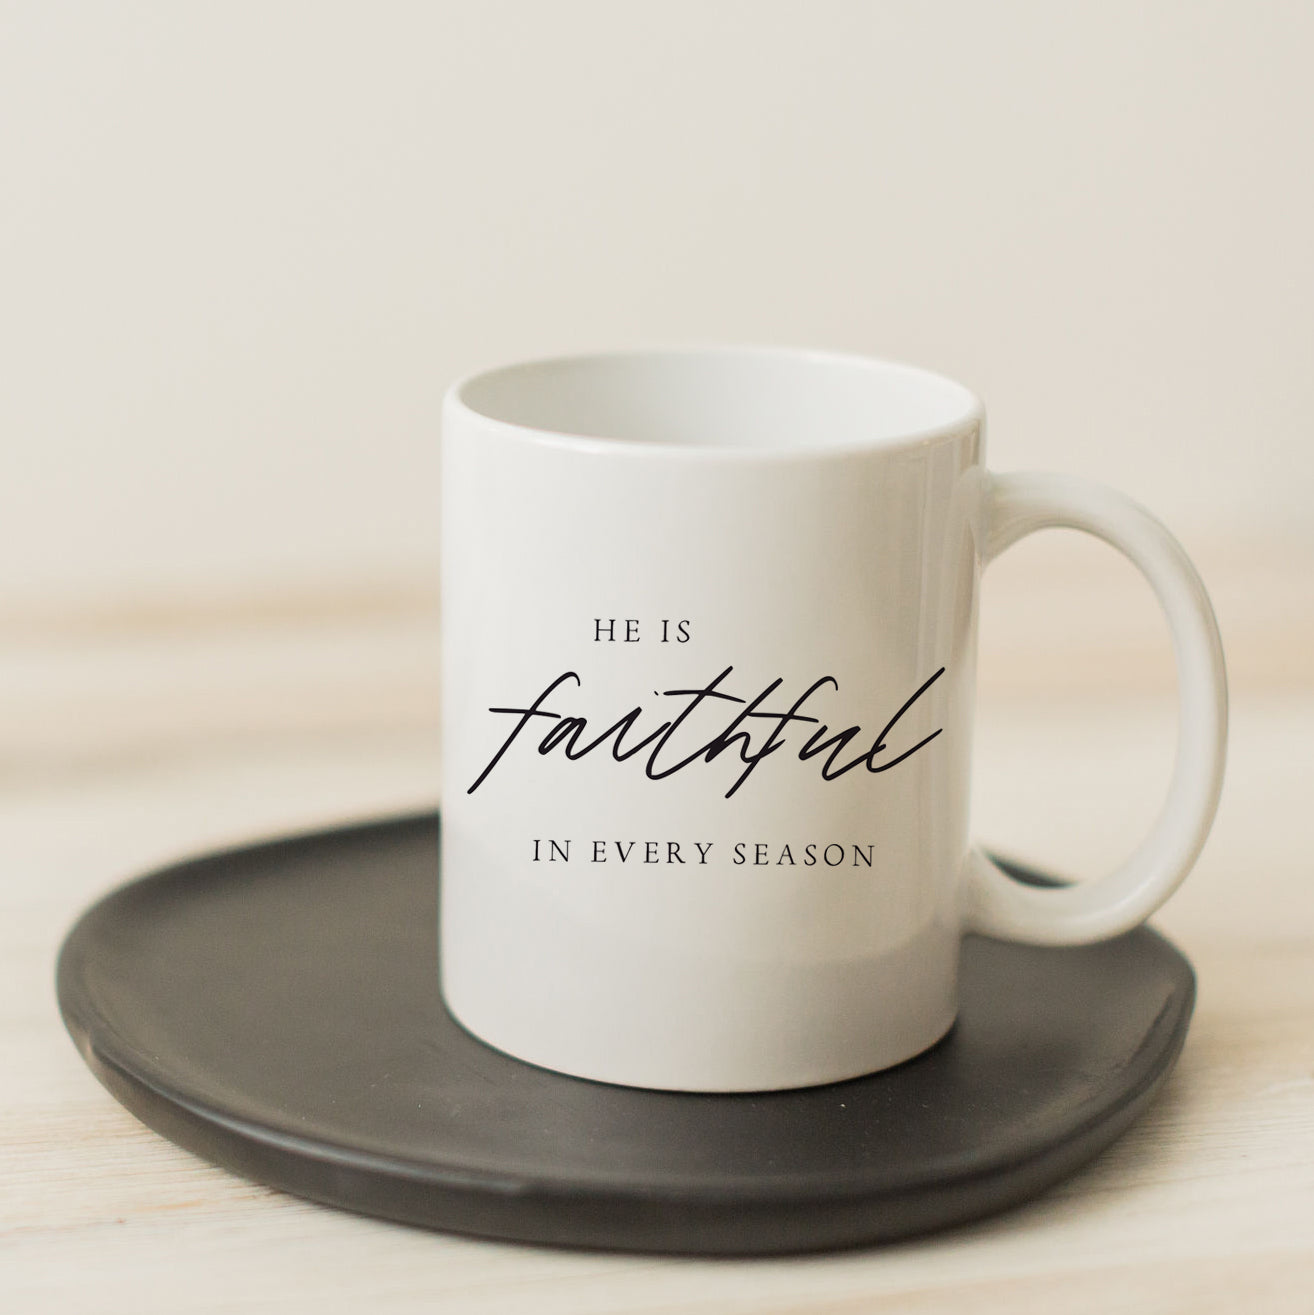 He Is Faithful In Every Season Mug